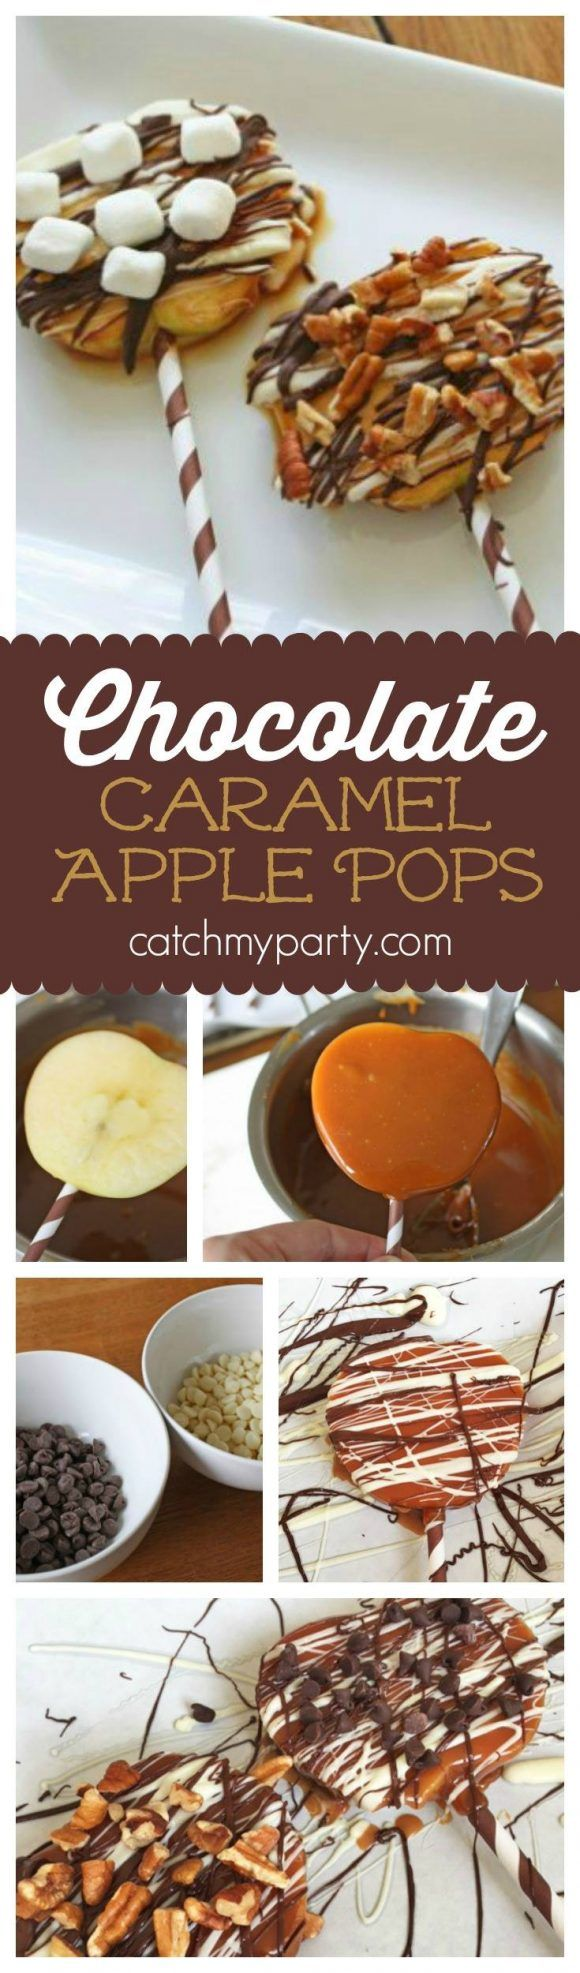 Chocolate Caramel Apple Pops | CatchMyParty.com